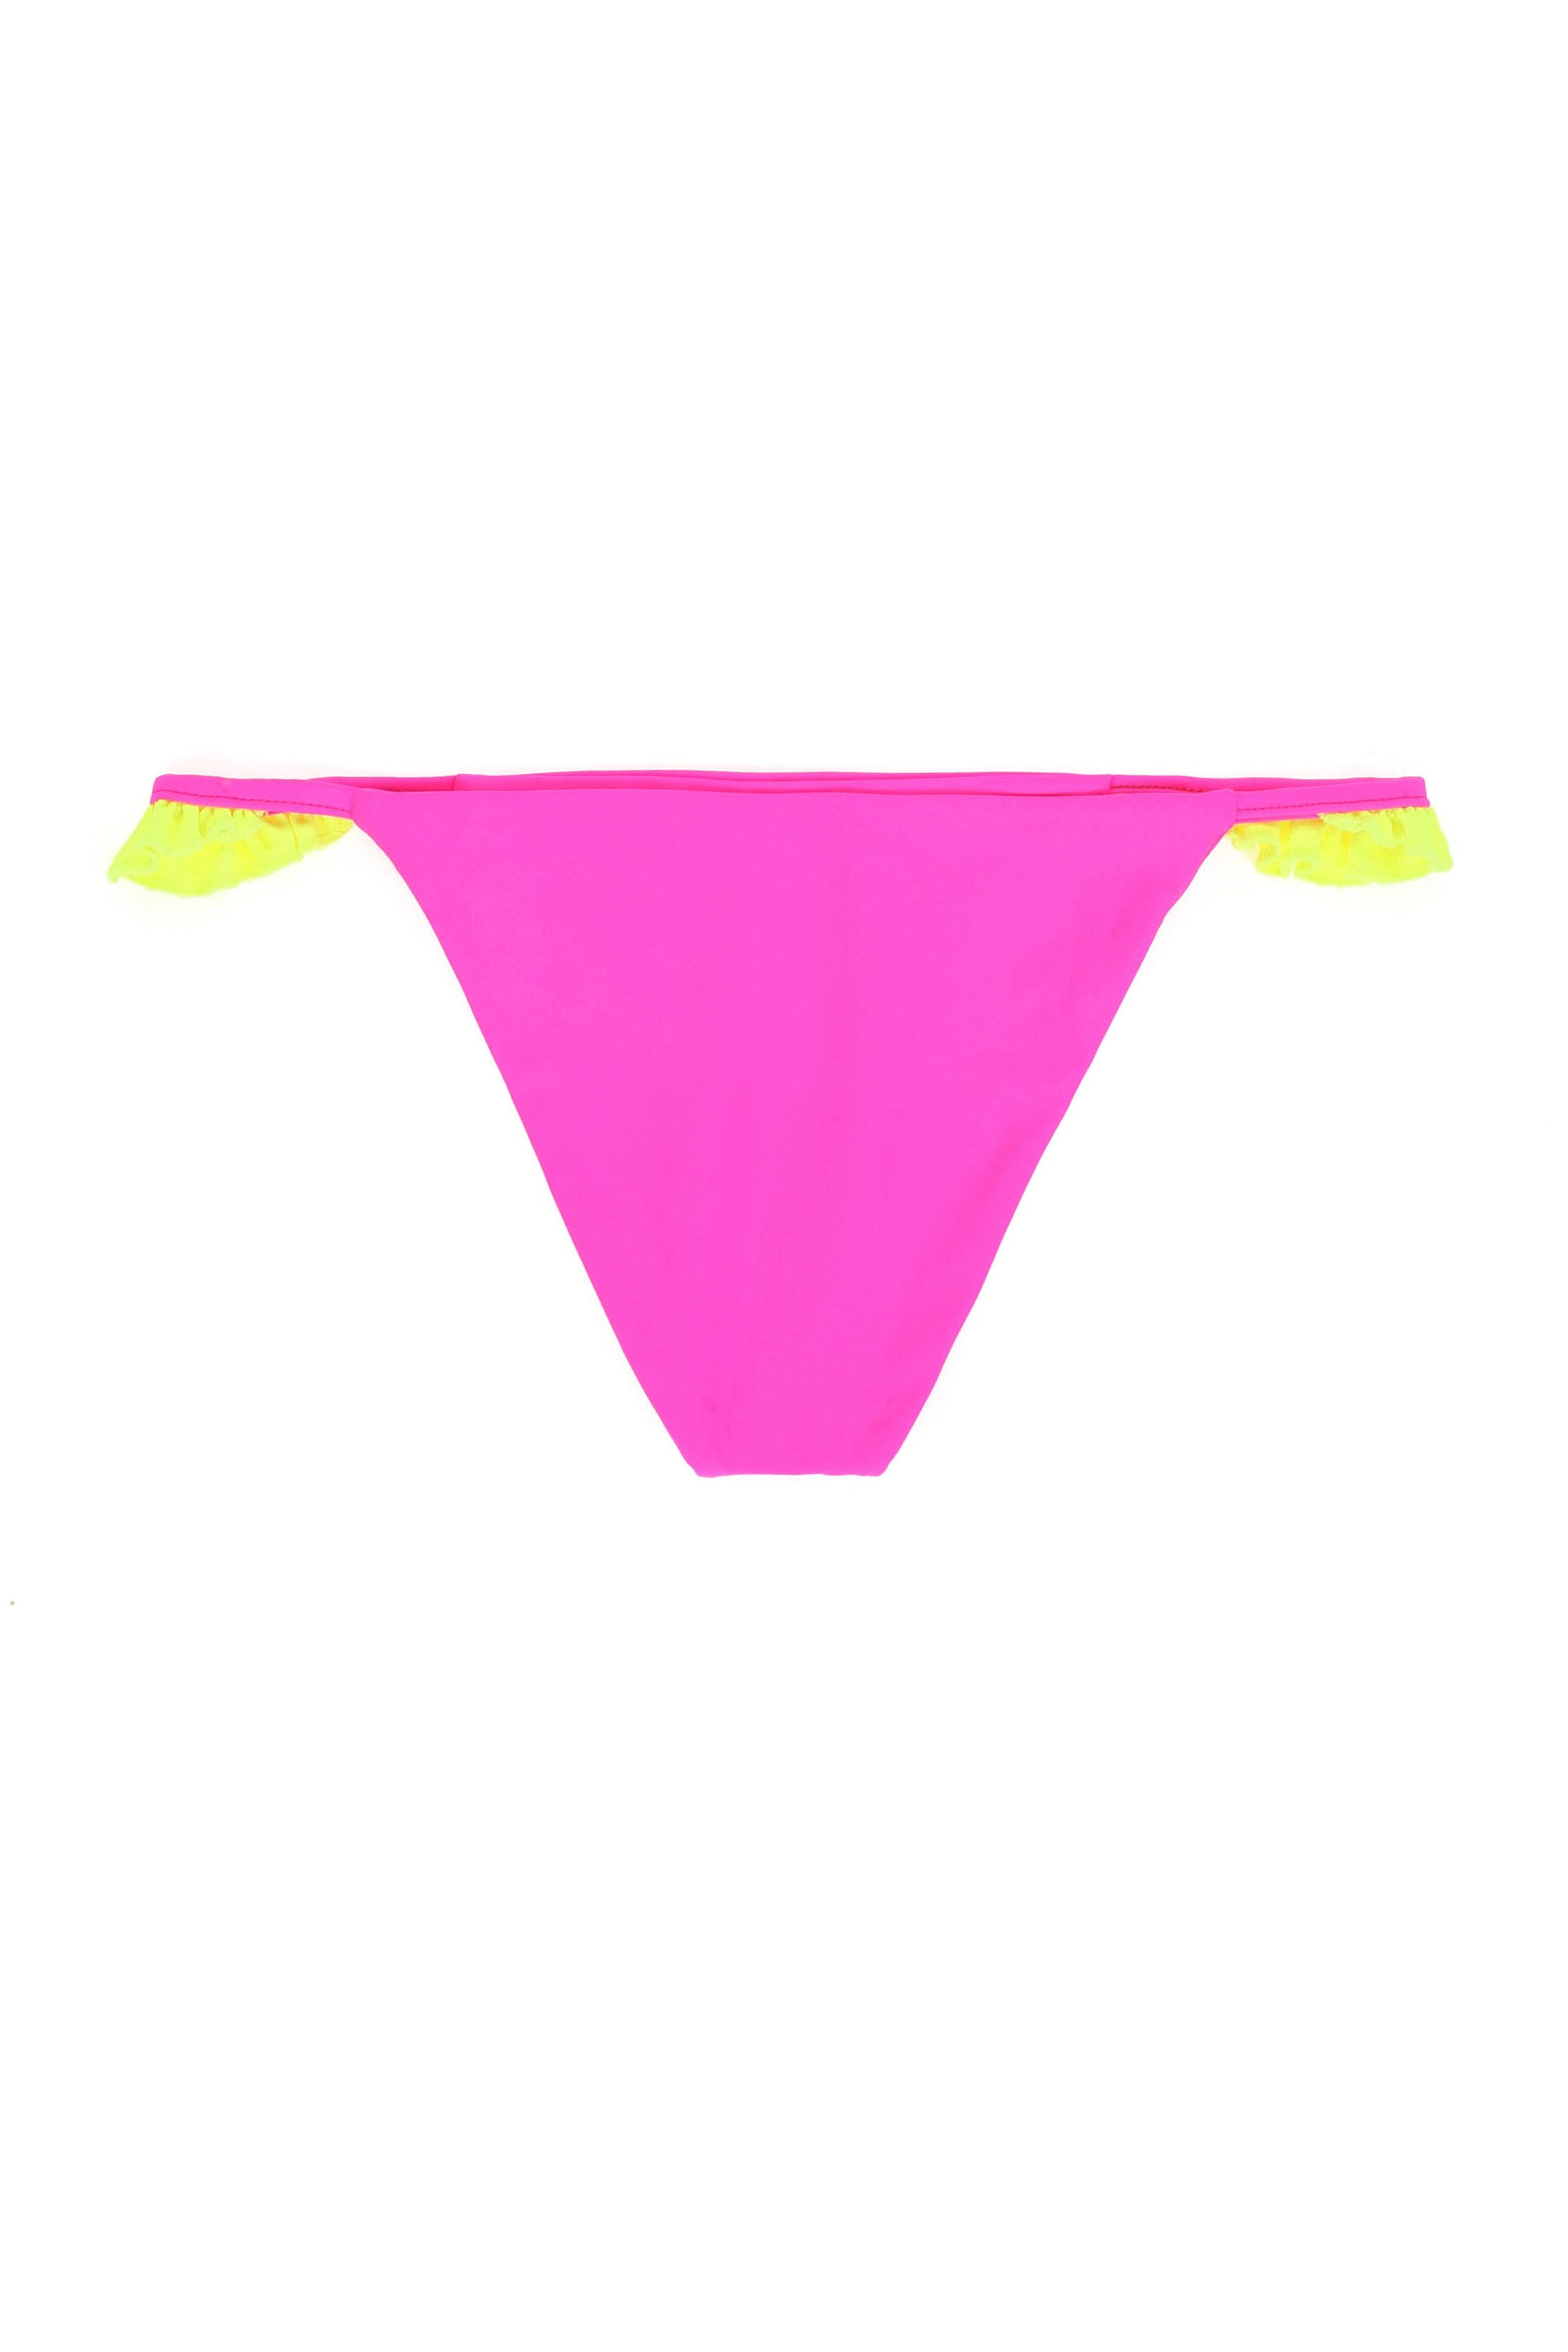 The Pin-Up Bottom (Neon Pink/Neon Yellow)